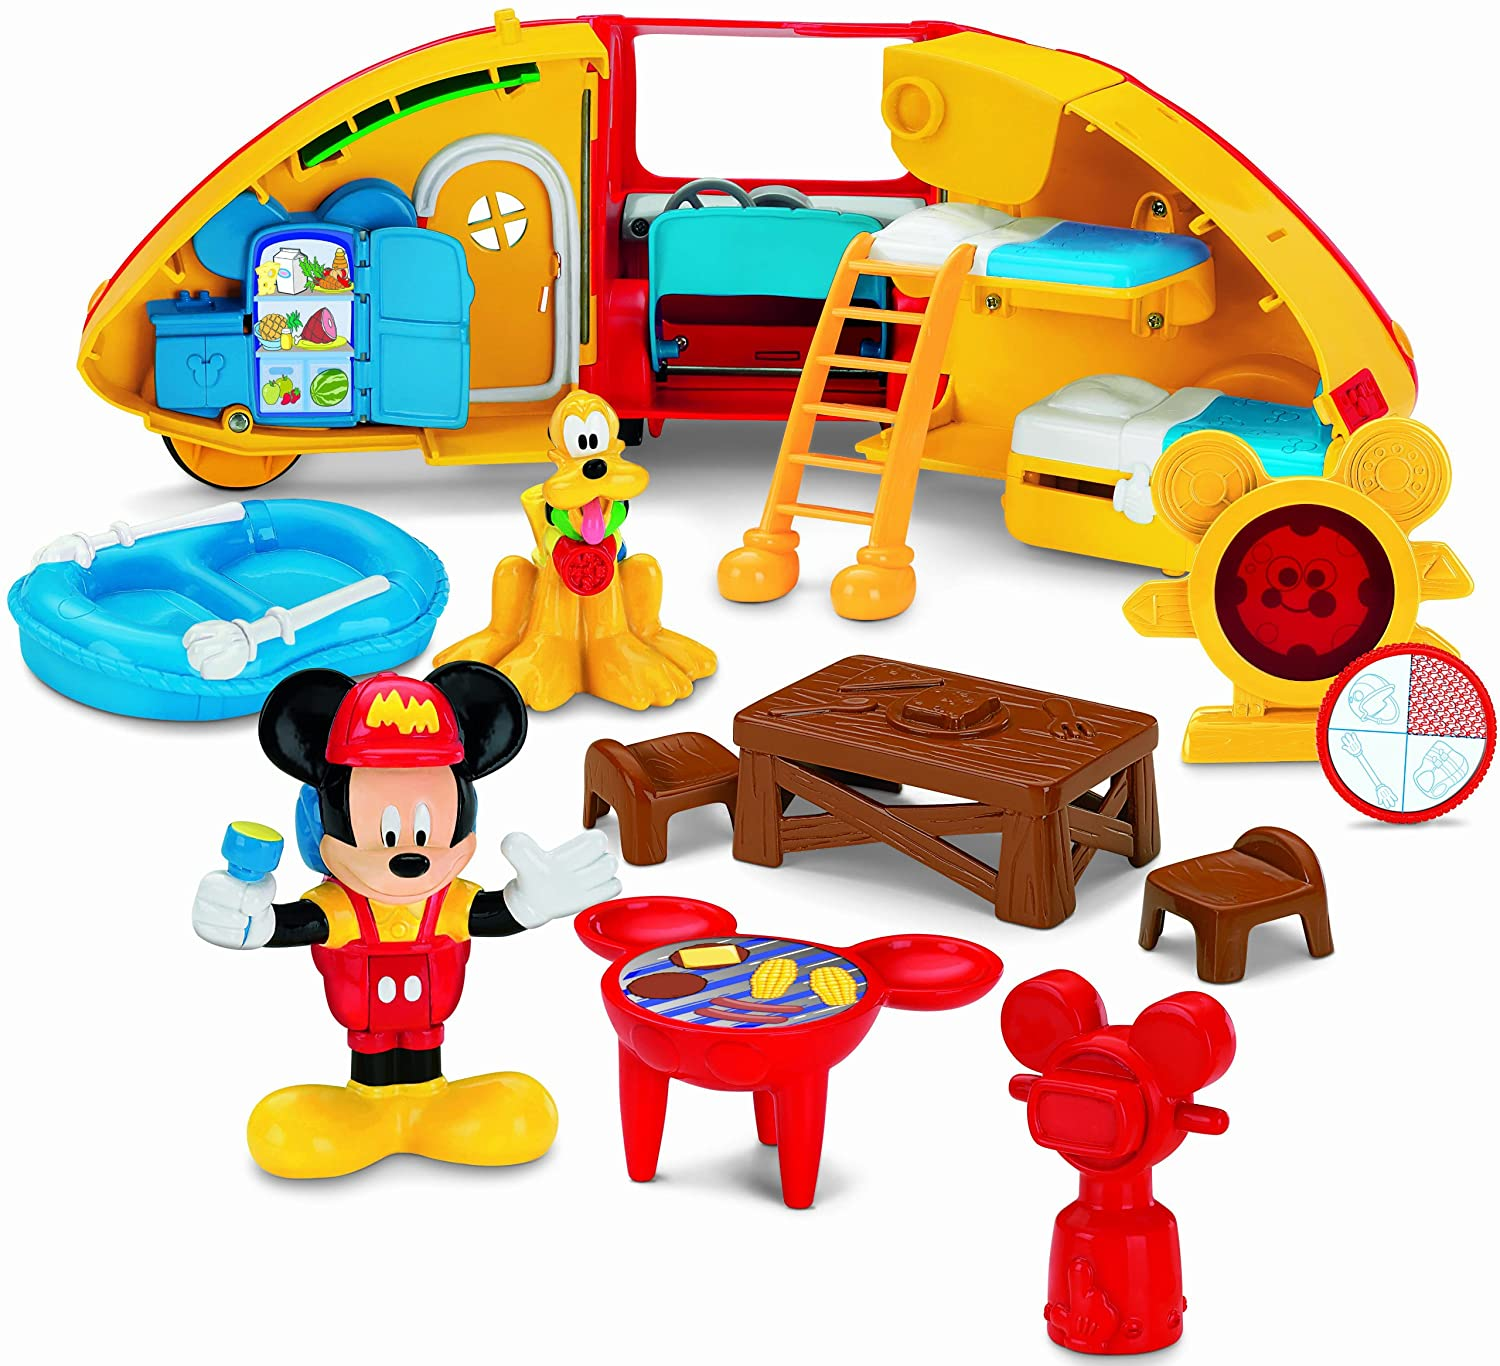 Mickey Mouse Toys : Great mickey mouse clubhouse toys for young children